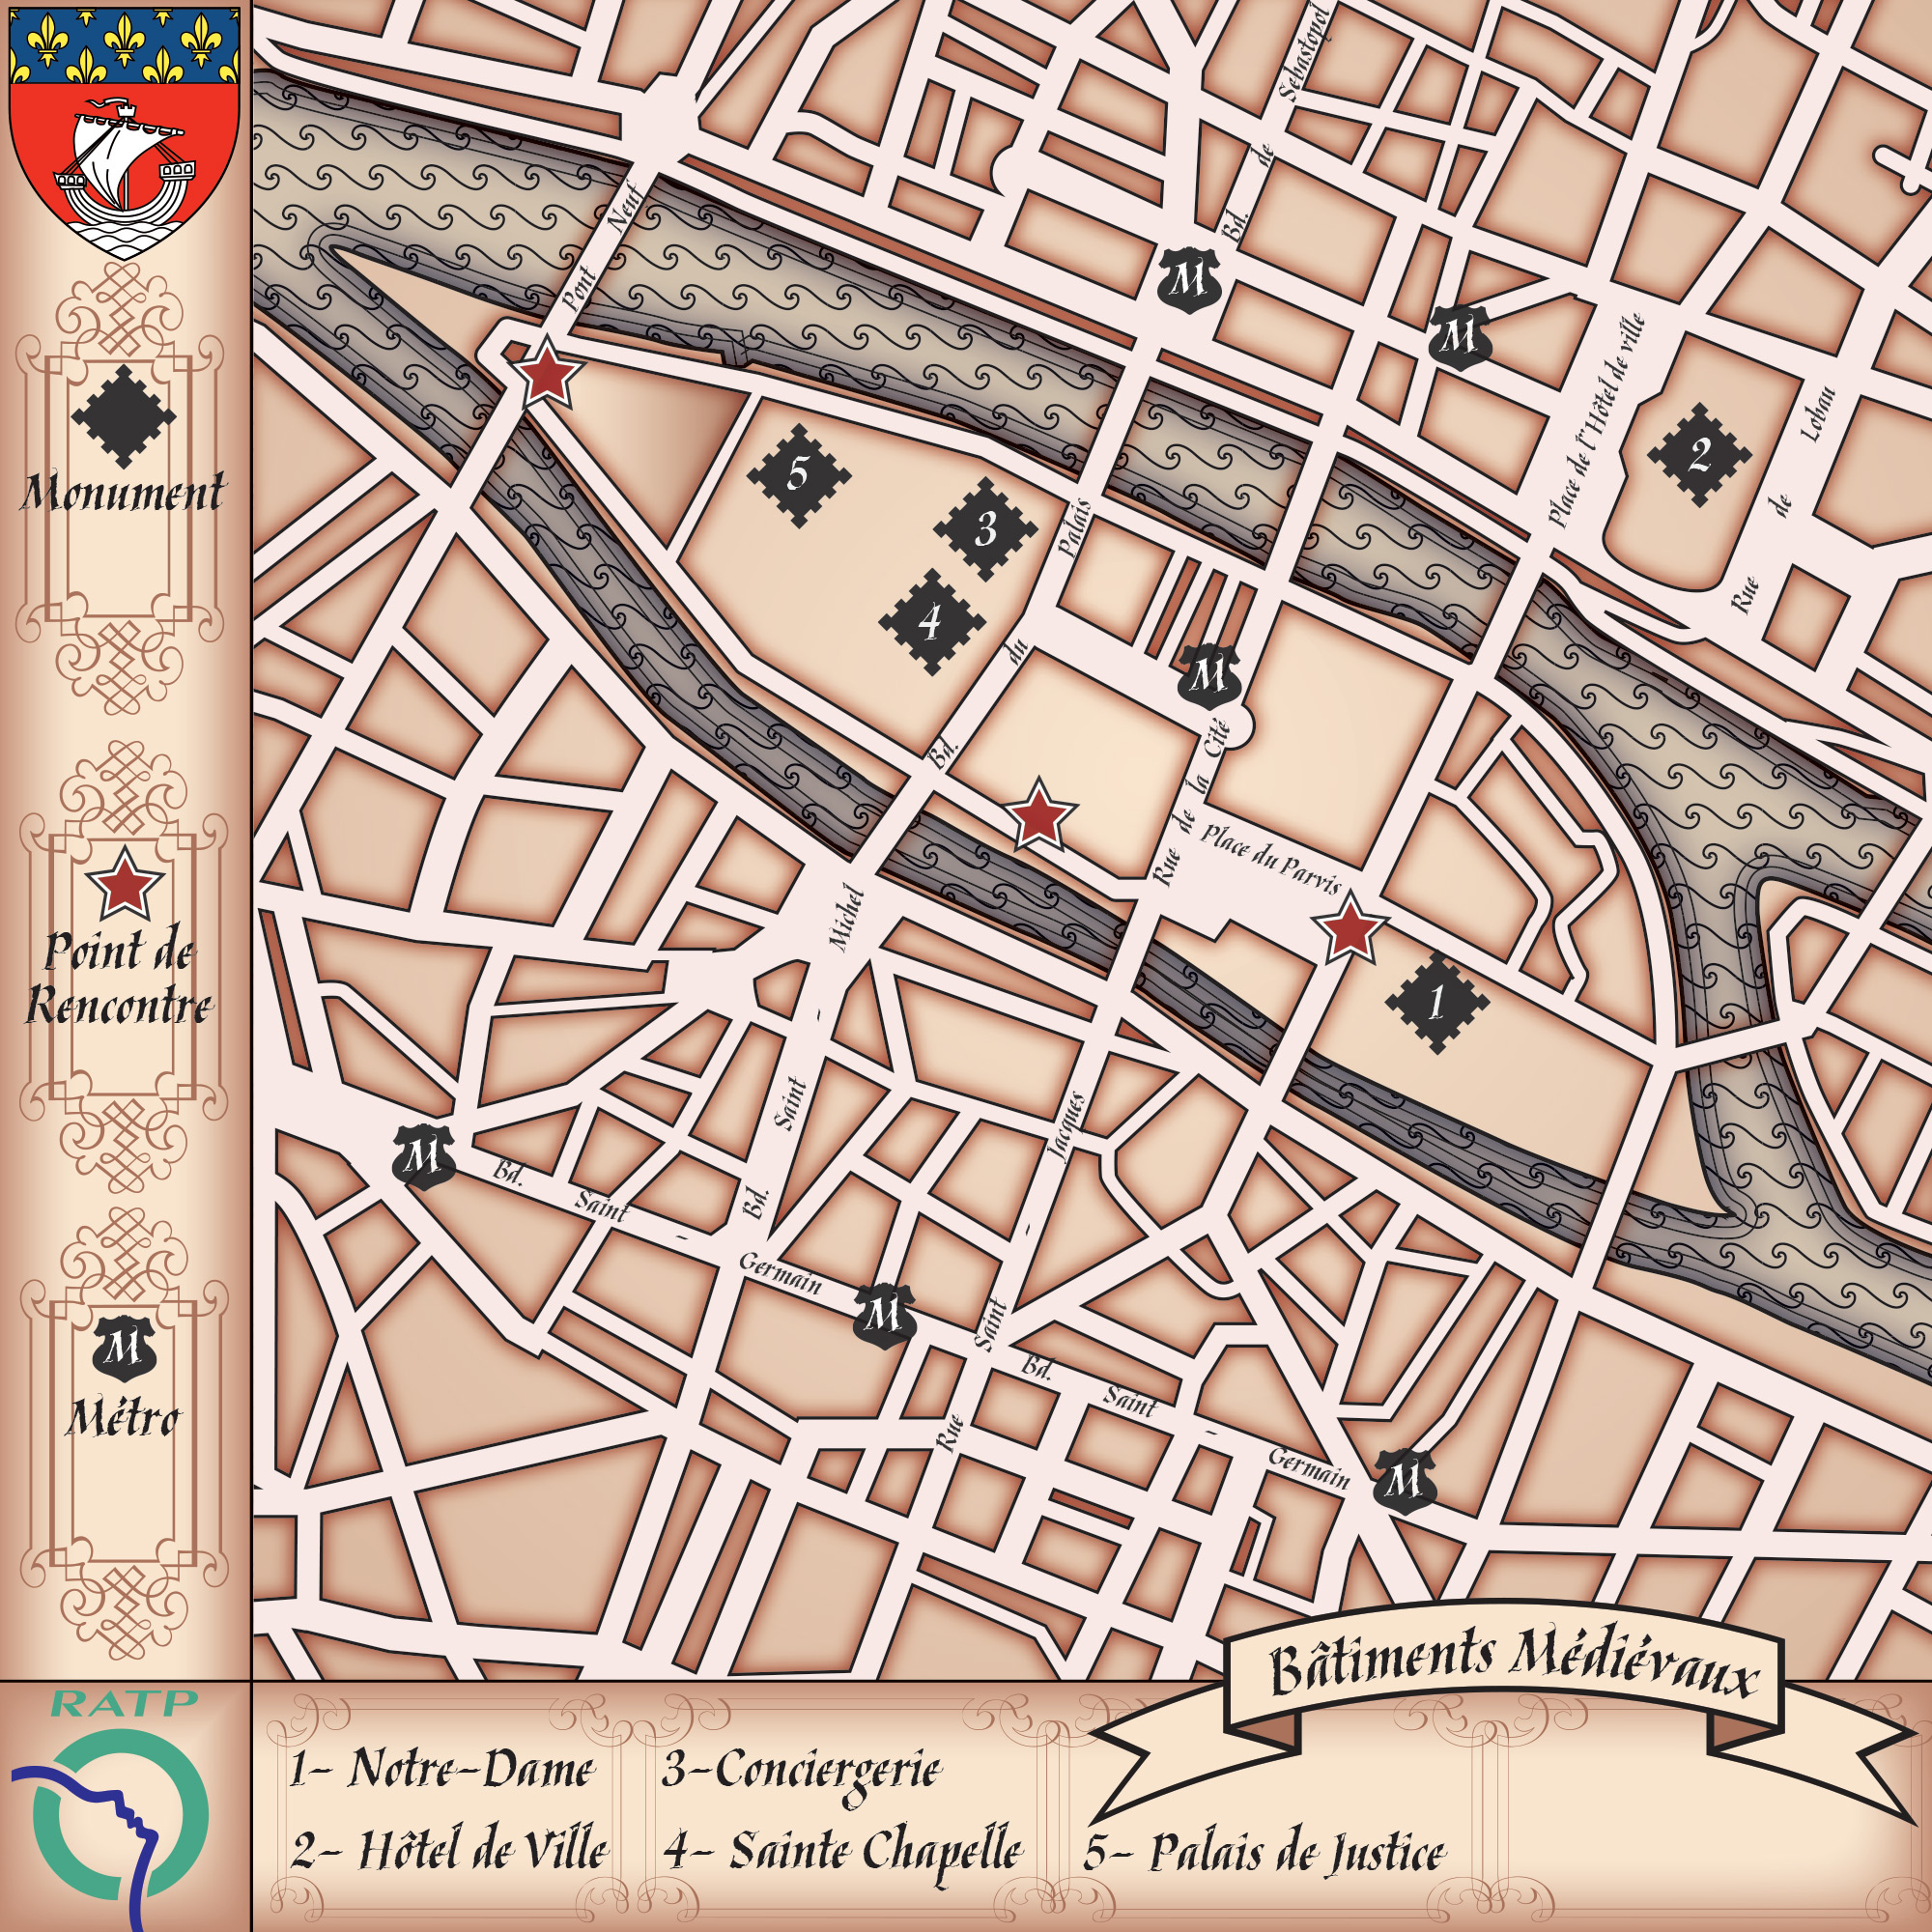 Touristic map of medieval buildings in the city island.